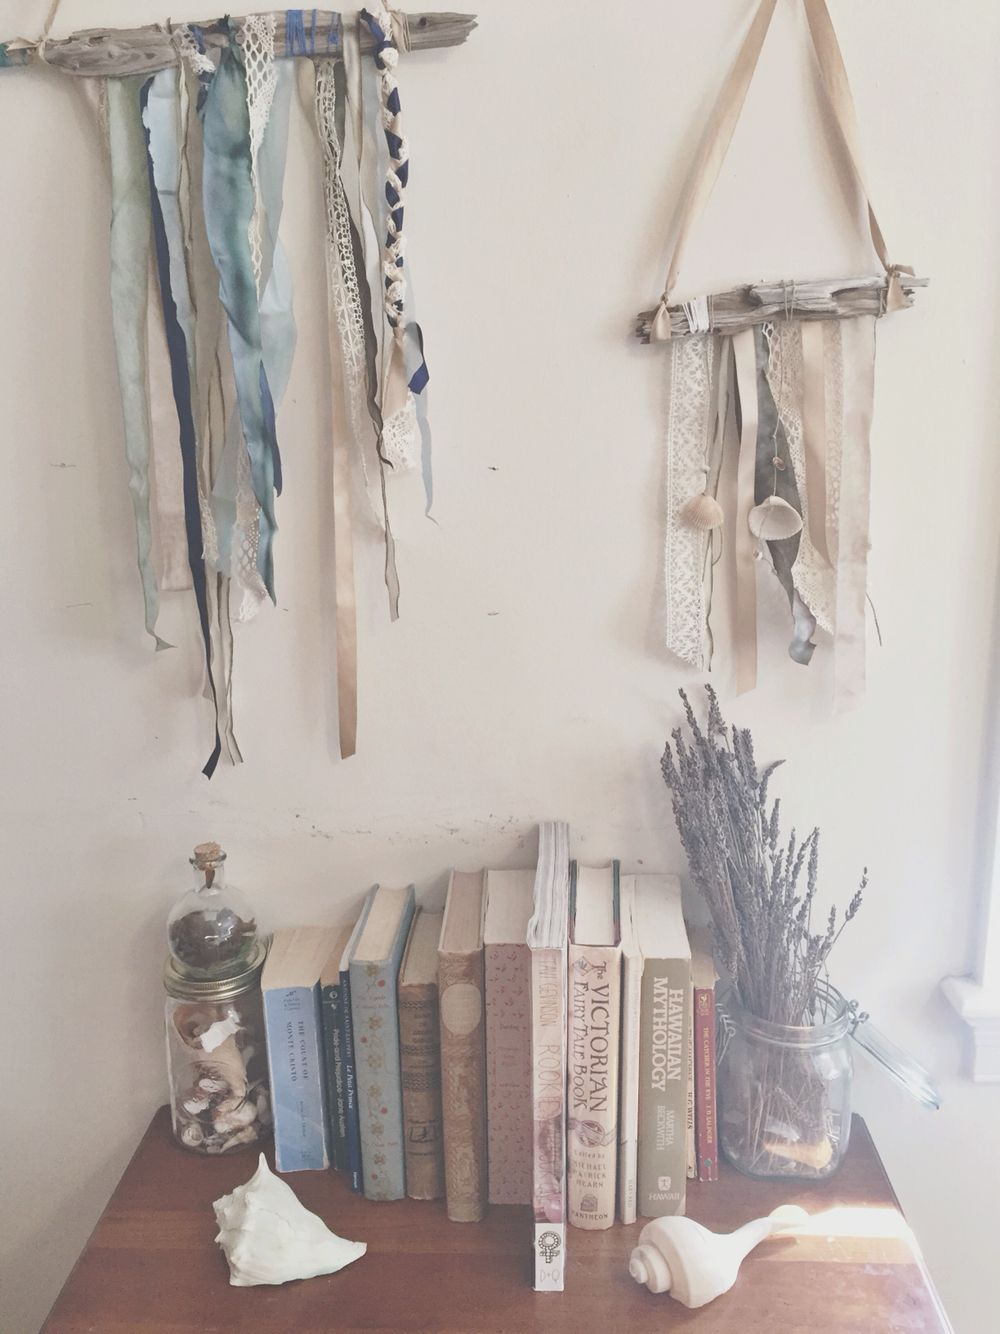 Check out my driftwood art for sale!!  https://www.etsy.com/shop/LouLuxeDesigns